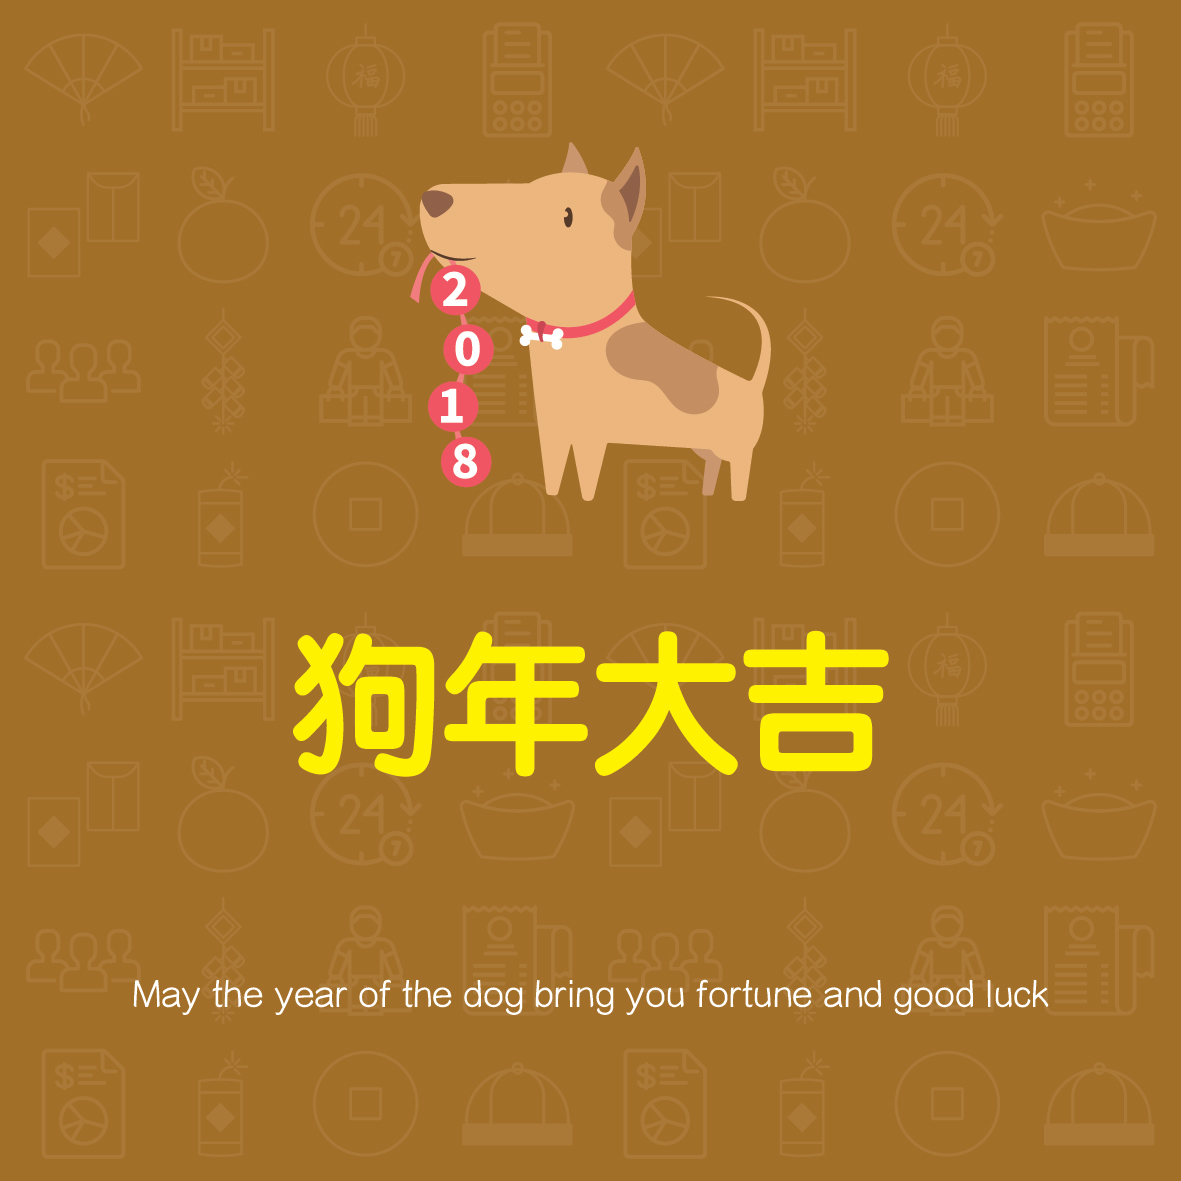 狗年大吉 2018 - Good luck & fortune!